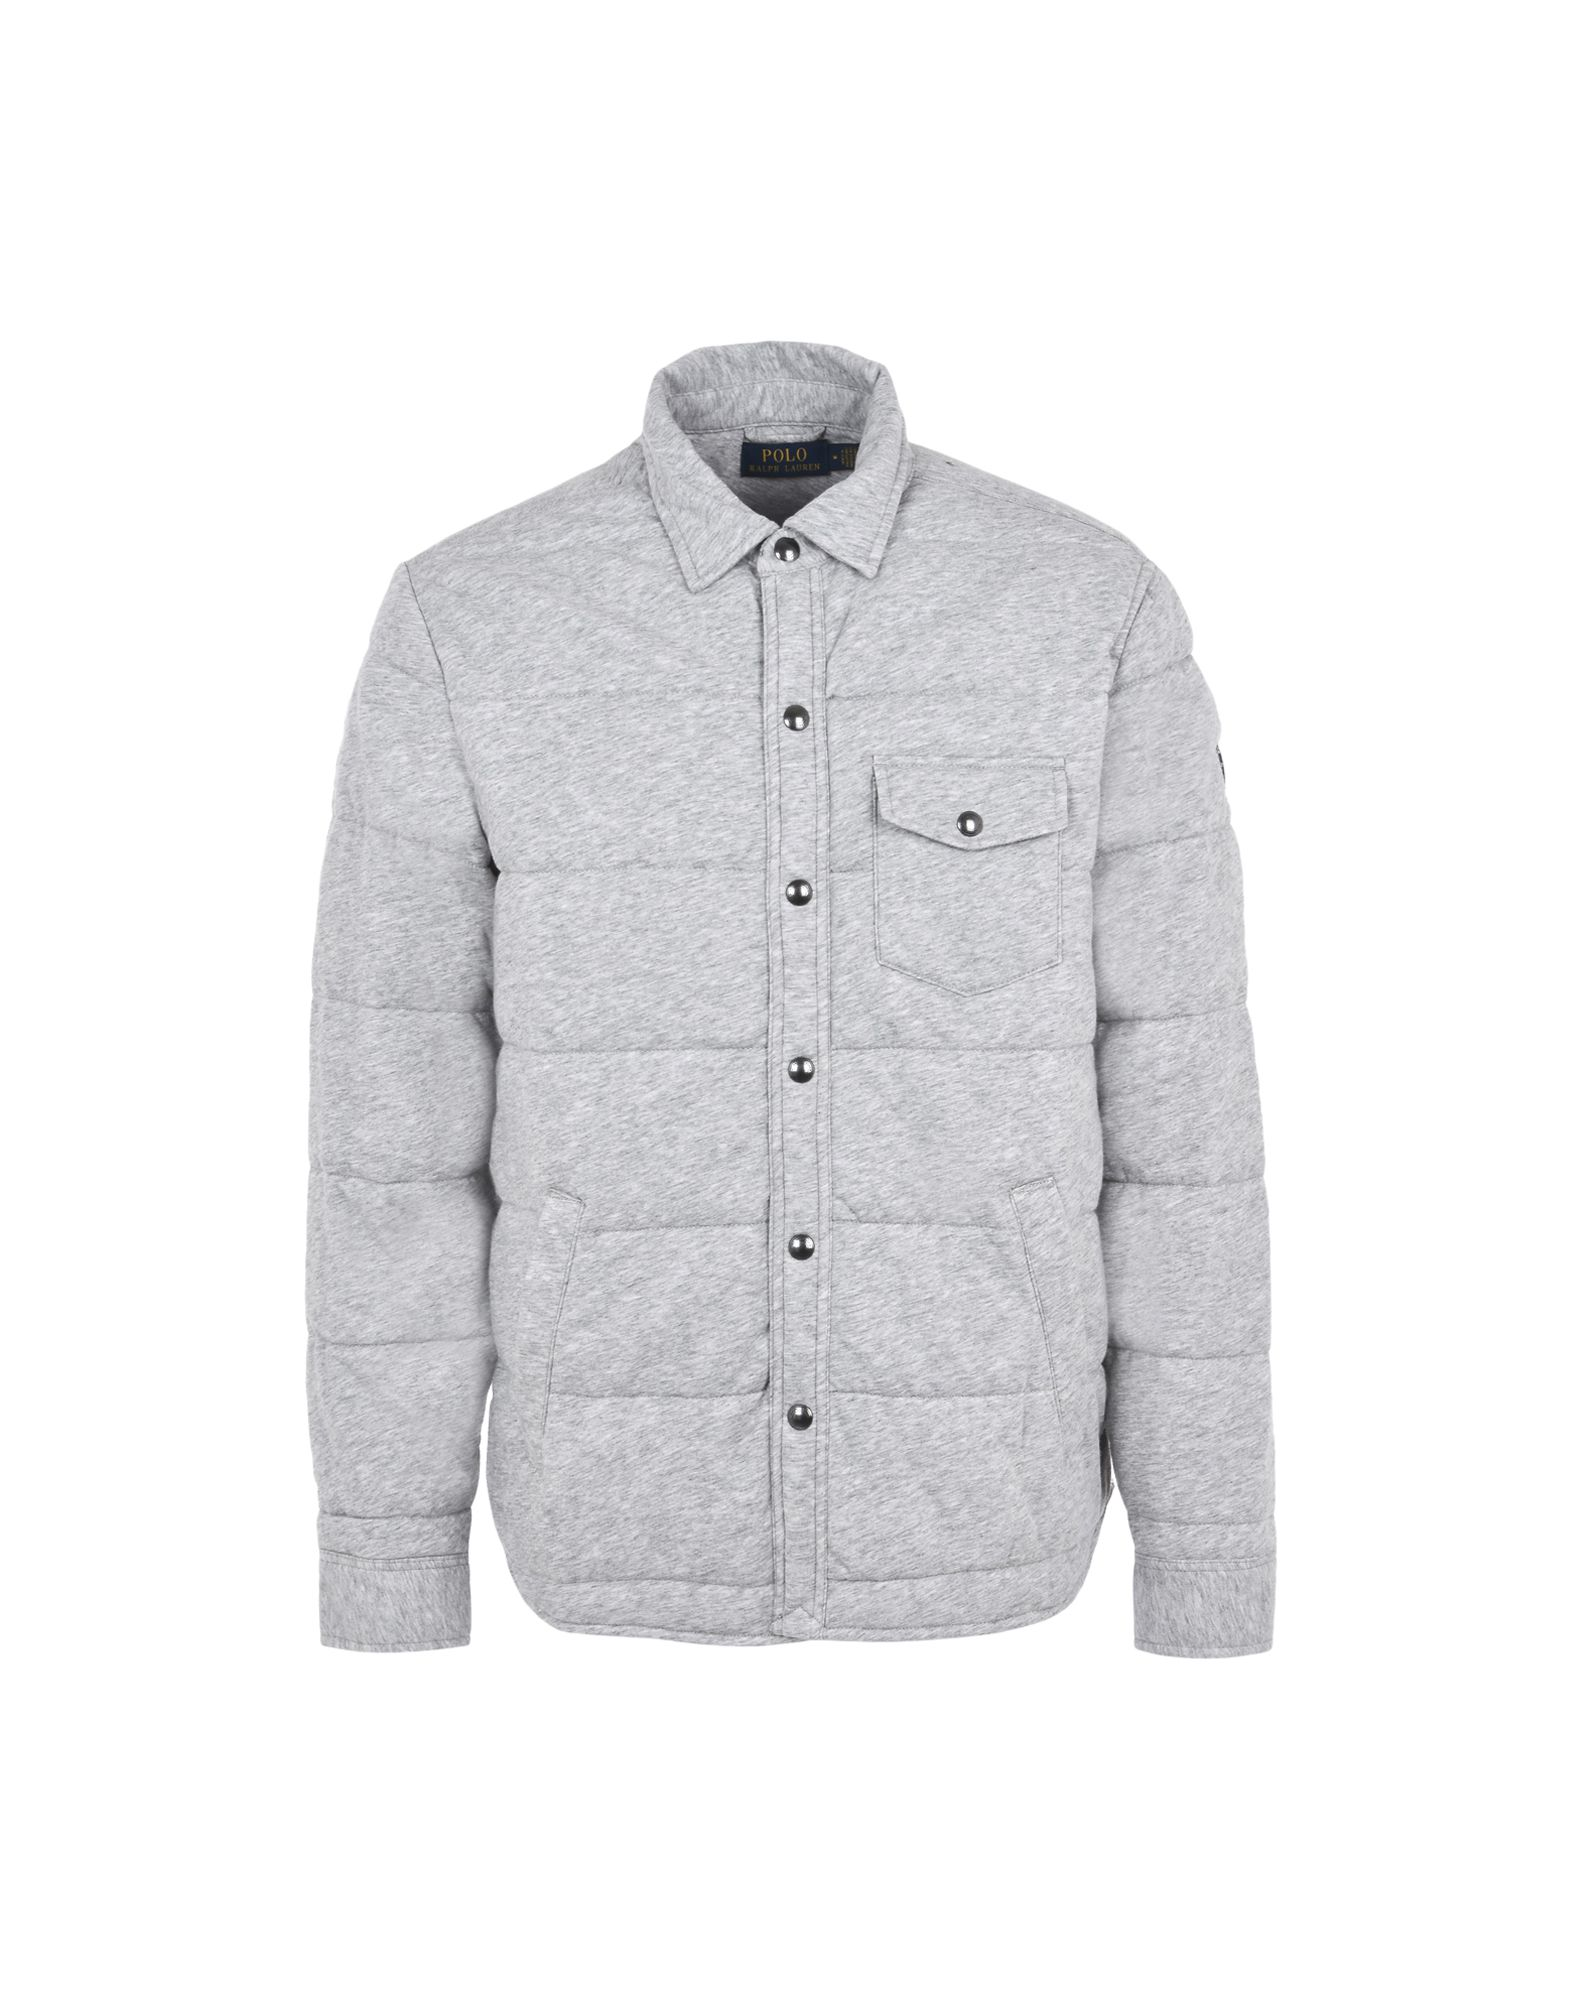 Giubbotto Polo Ralph Lauren Quilted Jacket - Uomo - Acquista online su